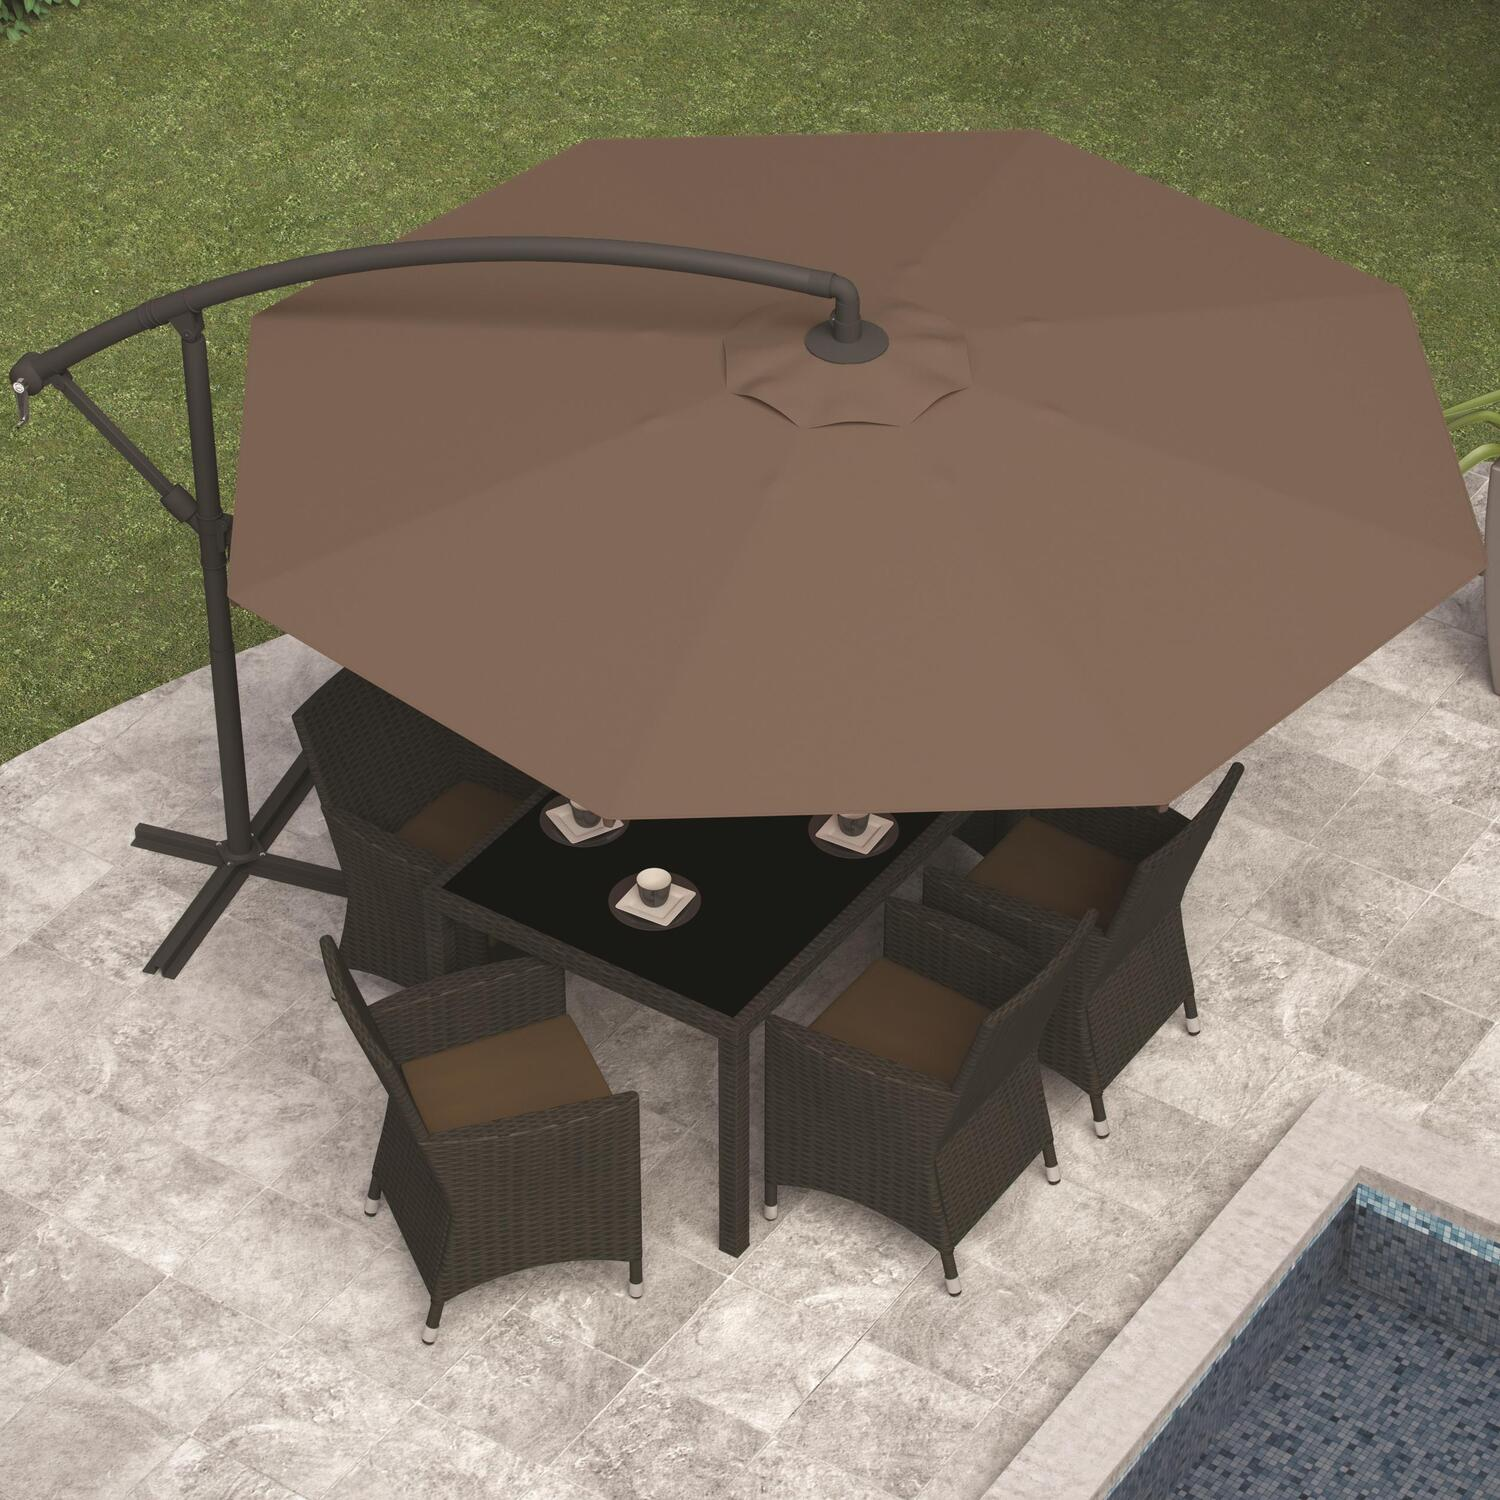 Best Of Patio Chair with Umbrella